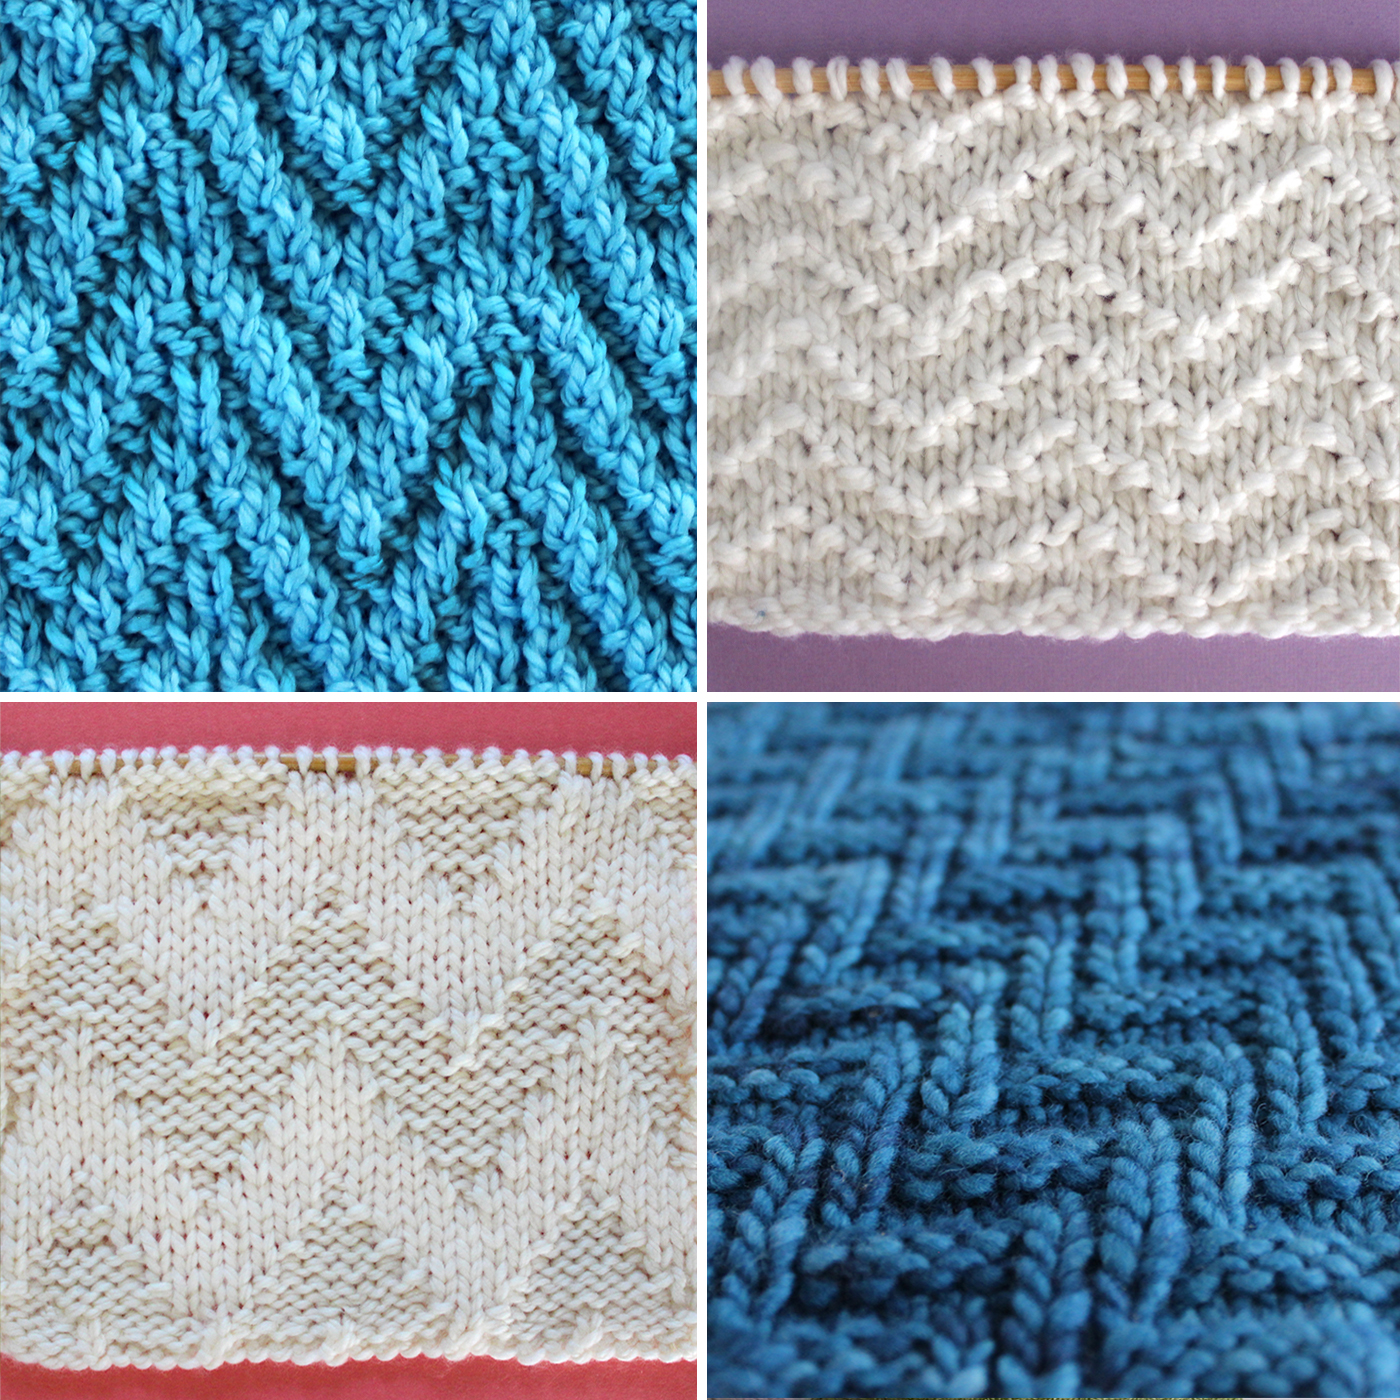 Swatch samples of four of chevron zigzag knit stitch textures in white and blue yarn colors.